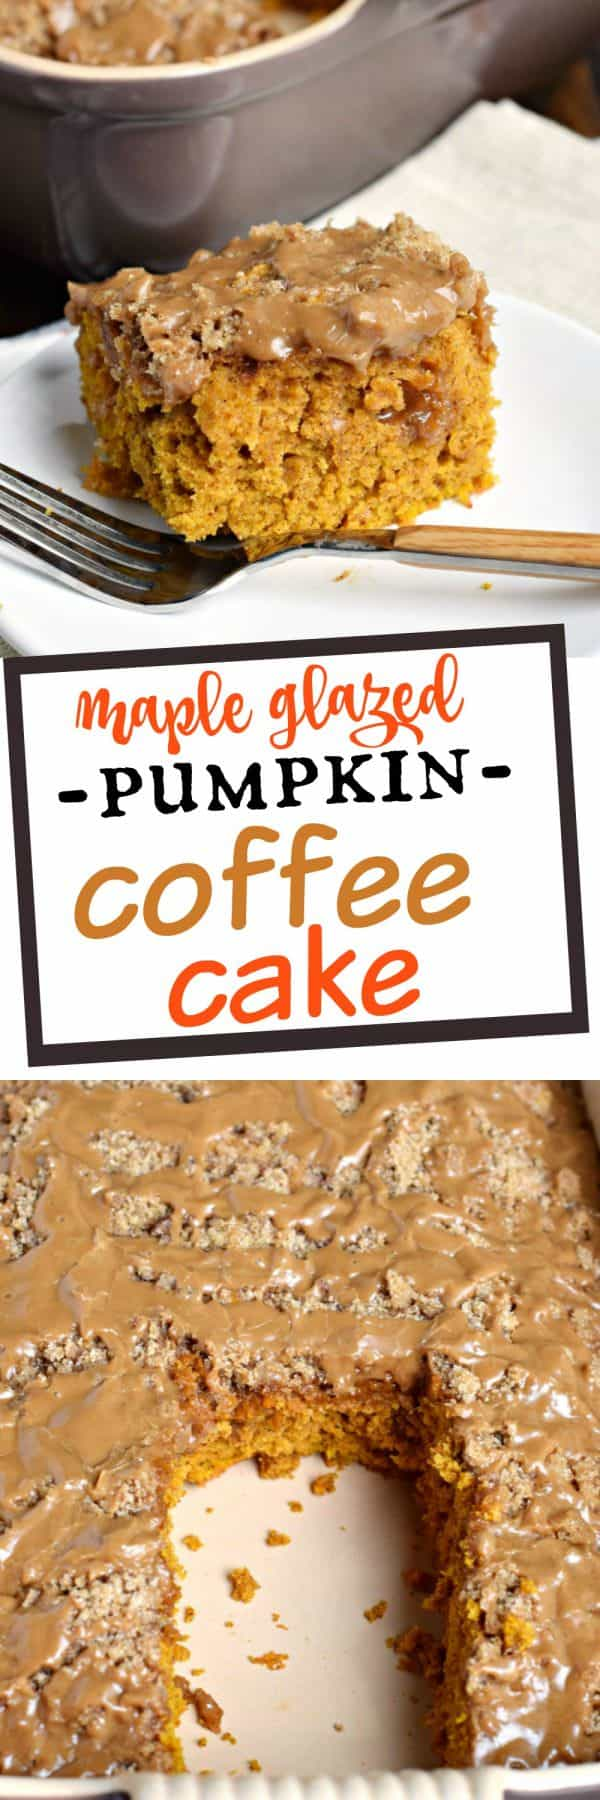 Pumpkin Streusel Coffee Cake with Maple Glaze is the perfect..